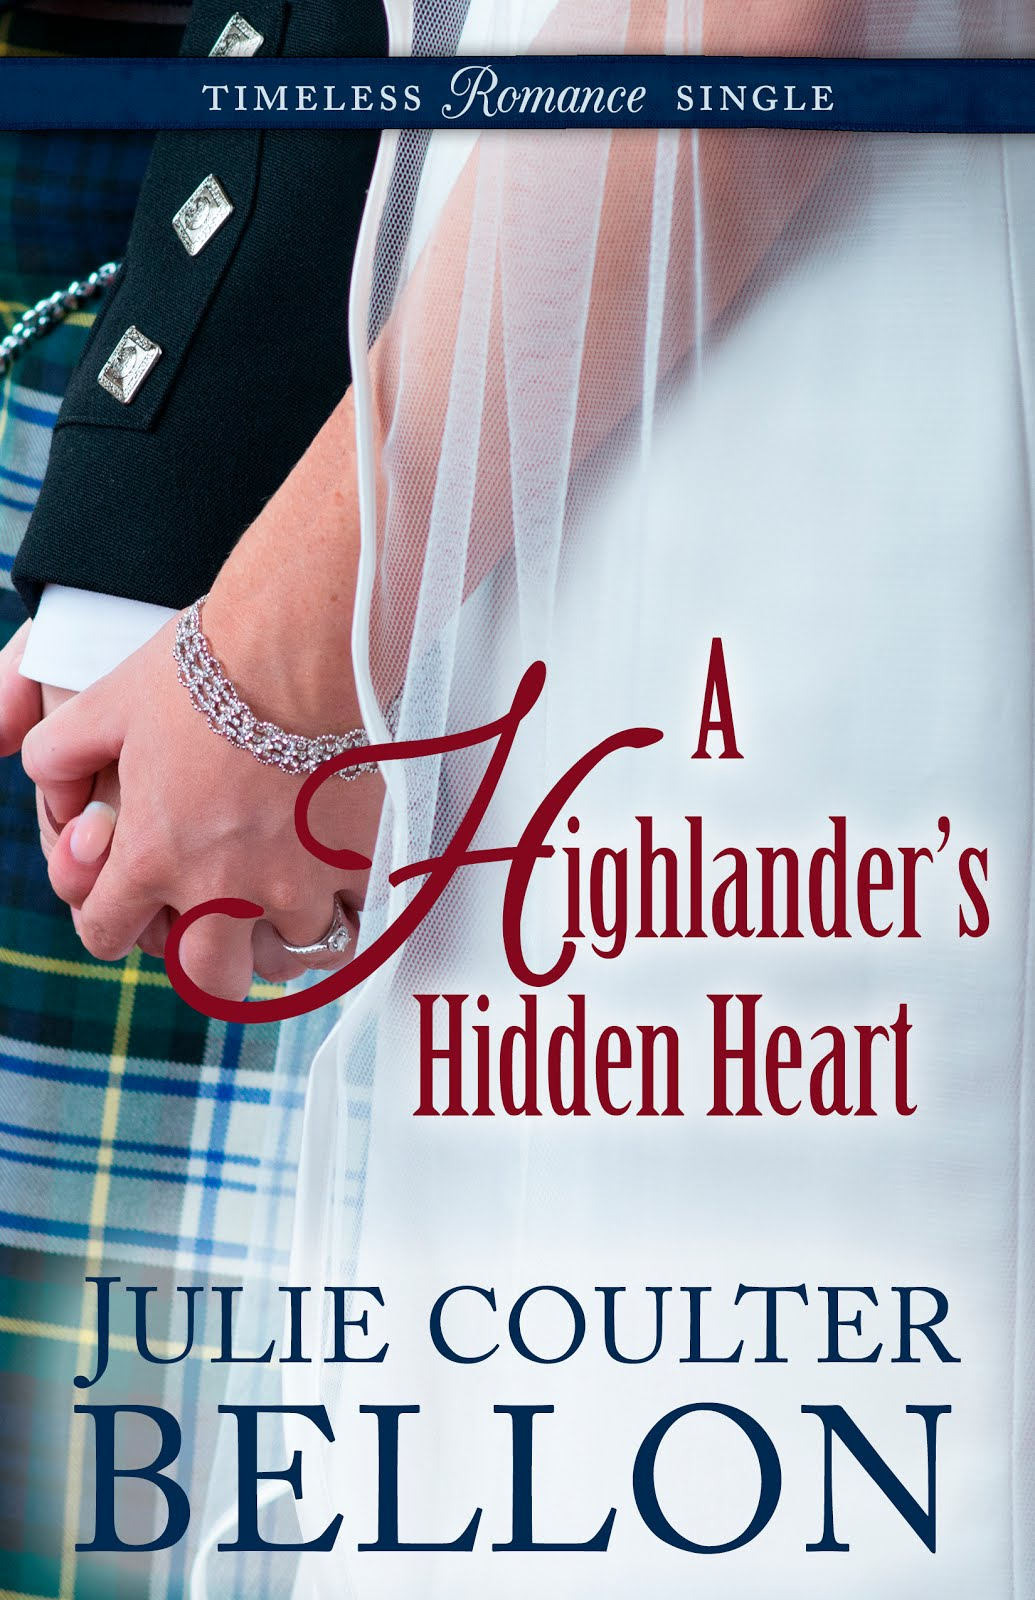 Newest Release: A Highlander's Hidden Heart